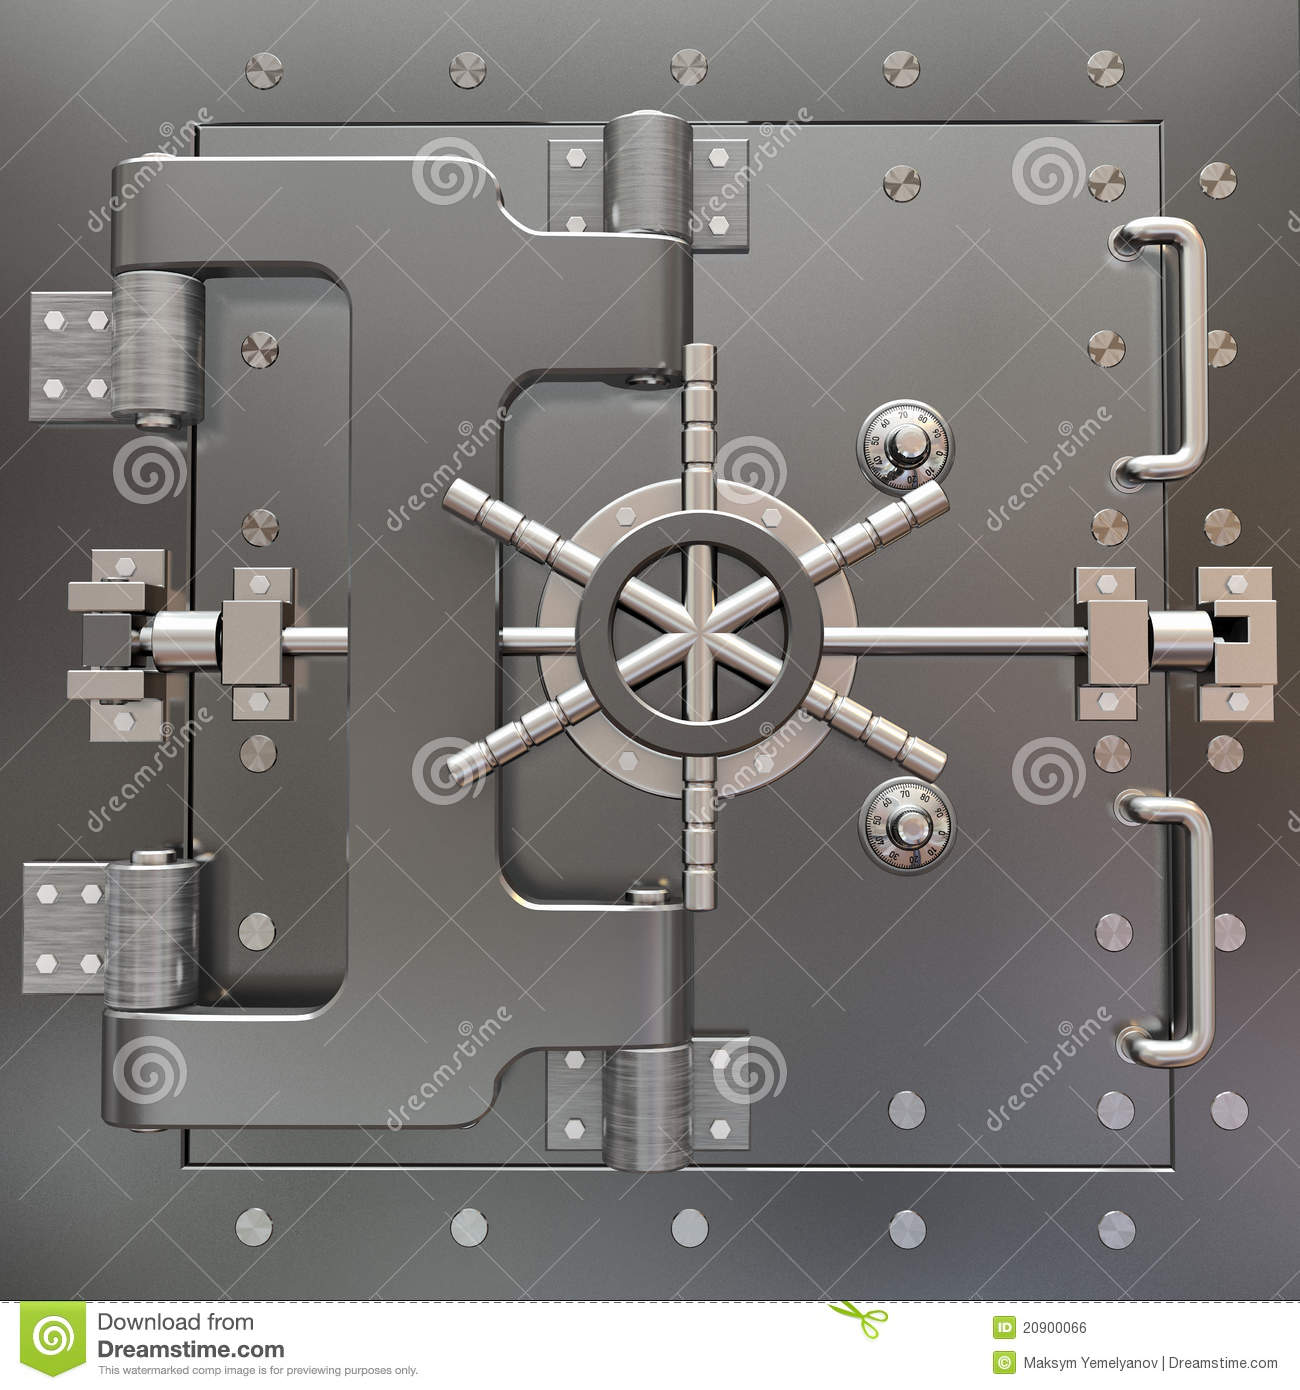 Bank Protection Drawing : Safe in stainless steel bank vault royalty free stock